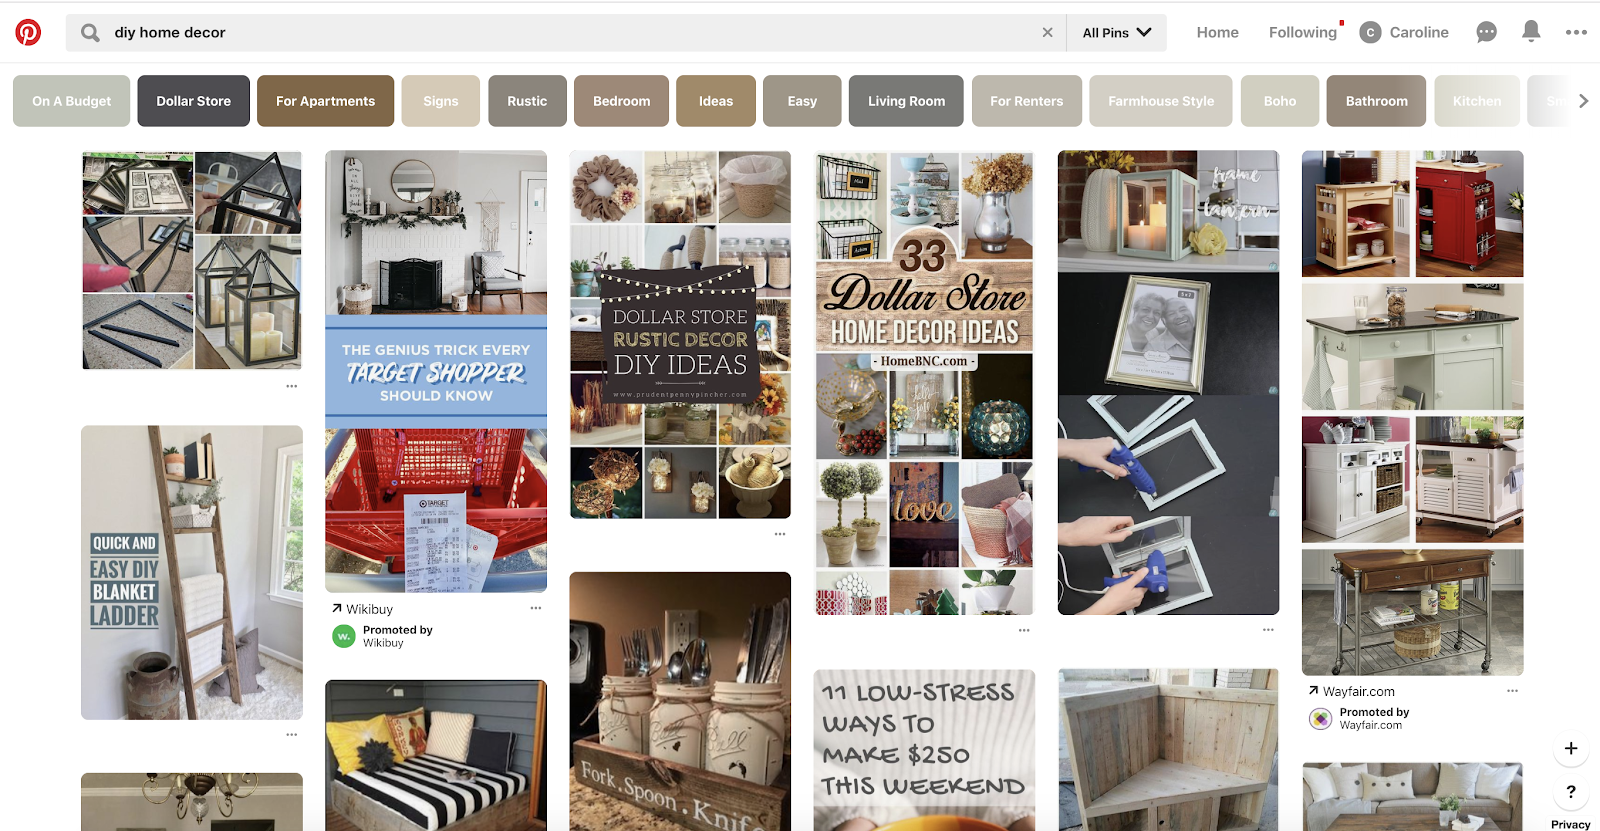 If youu0027re in the business of interior design or home renovations, you might  consider posting design tips, color themes, or simple DIY projects on  Pinterest.